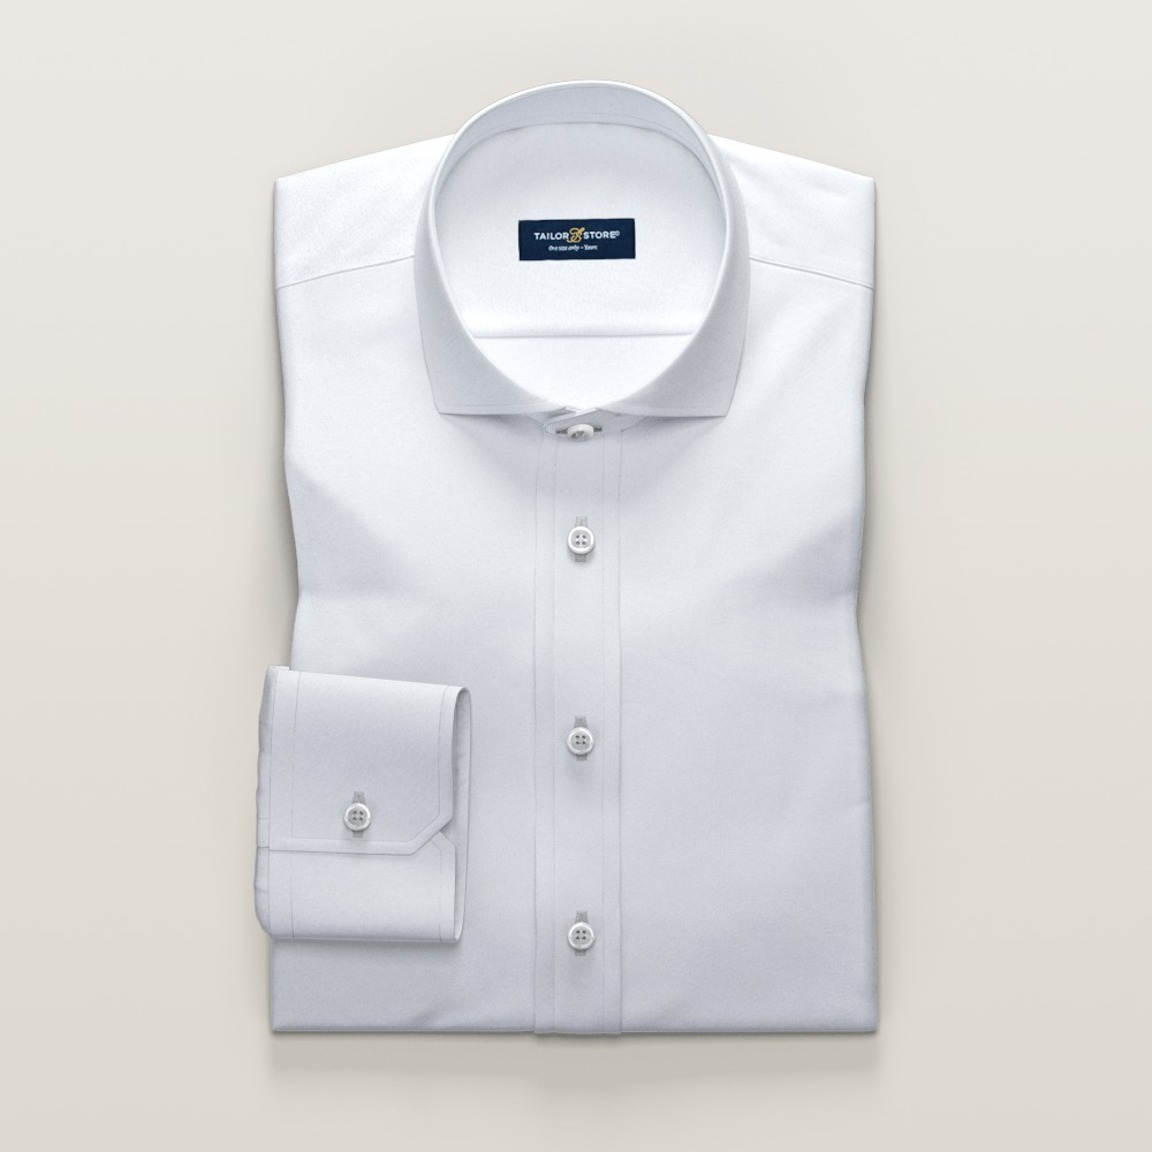 White Oxford shirt with cut-away collar